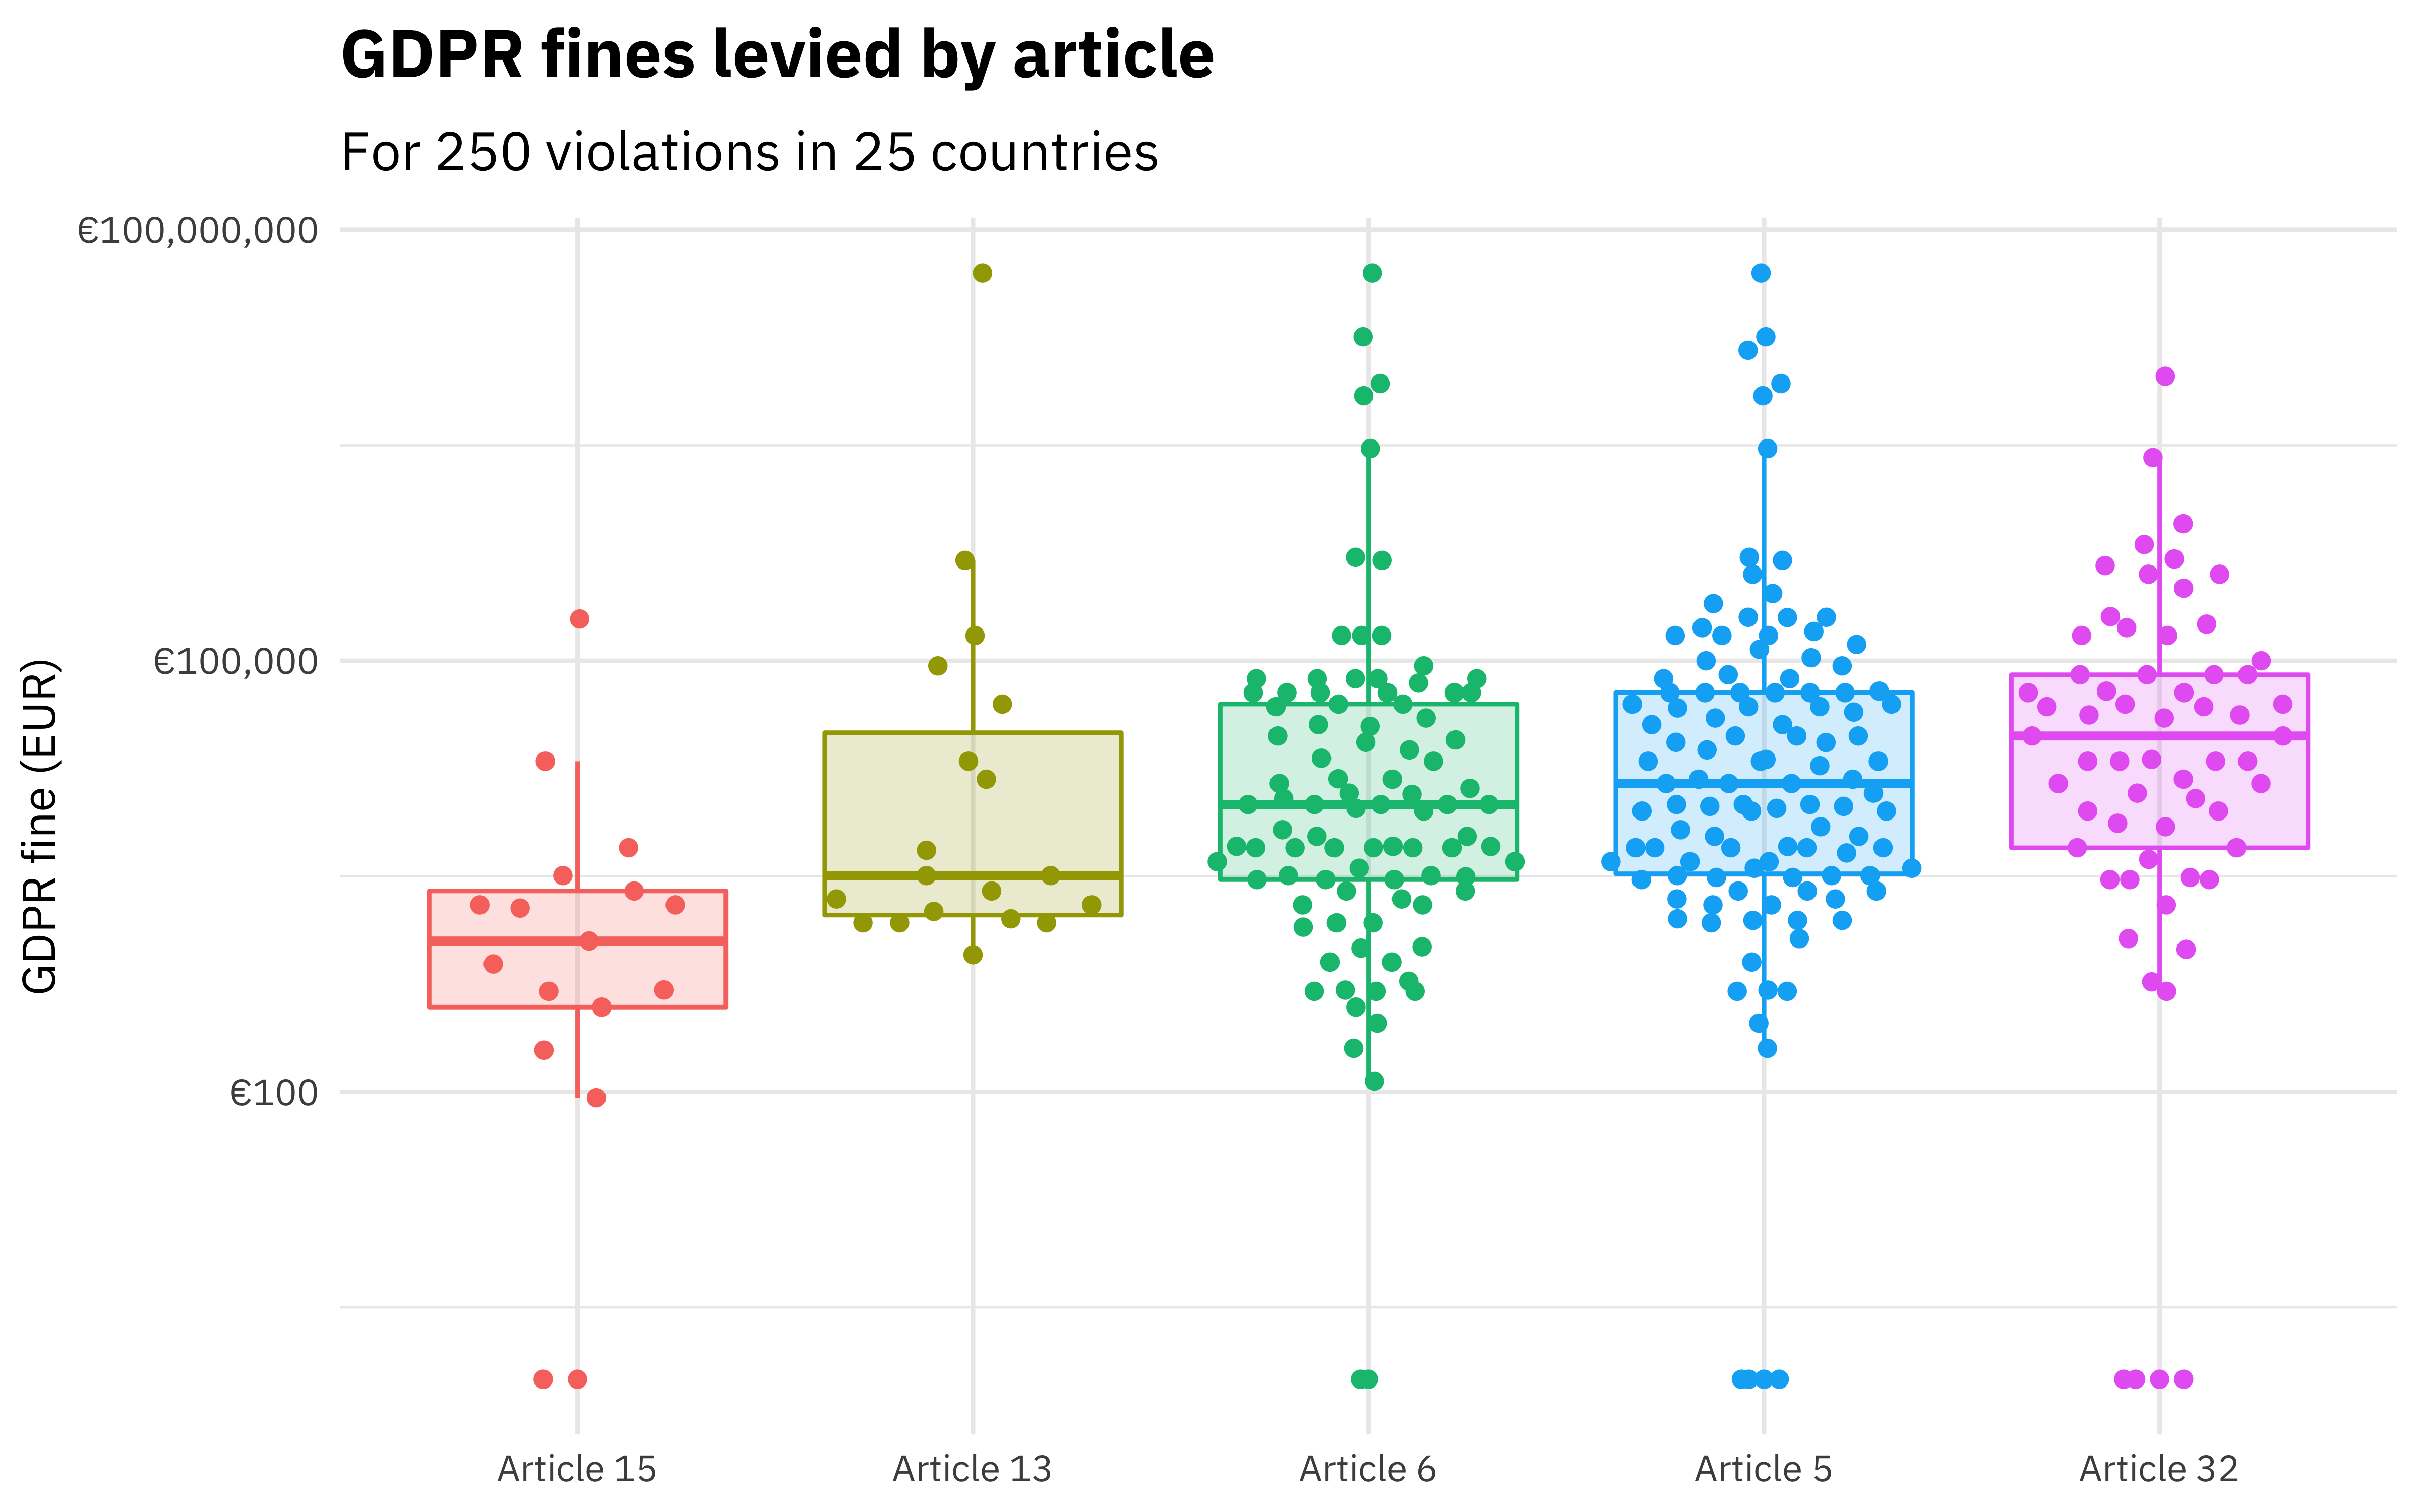 Scatter graph showing trends in GDPR fine amounts by particular article.